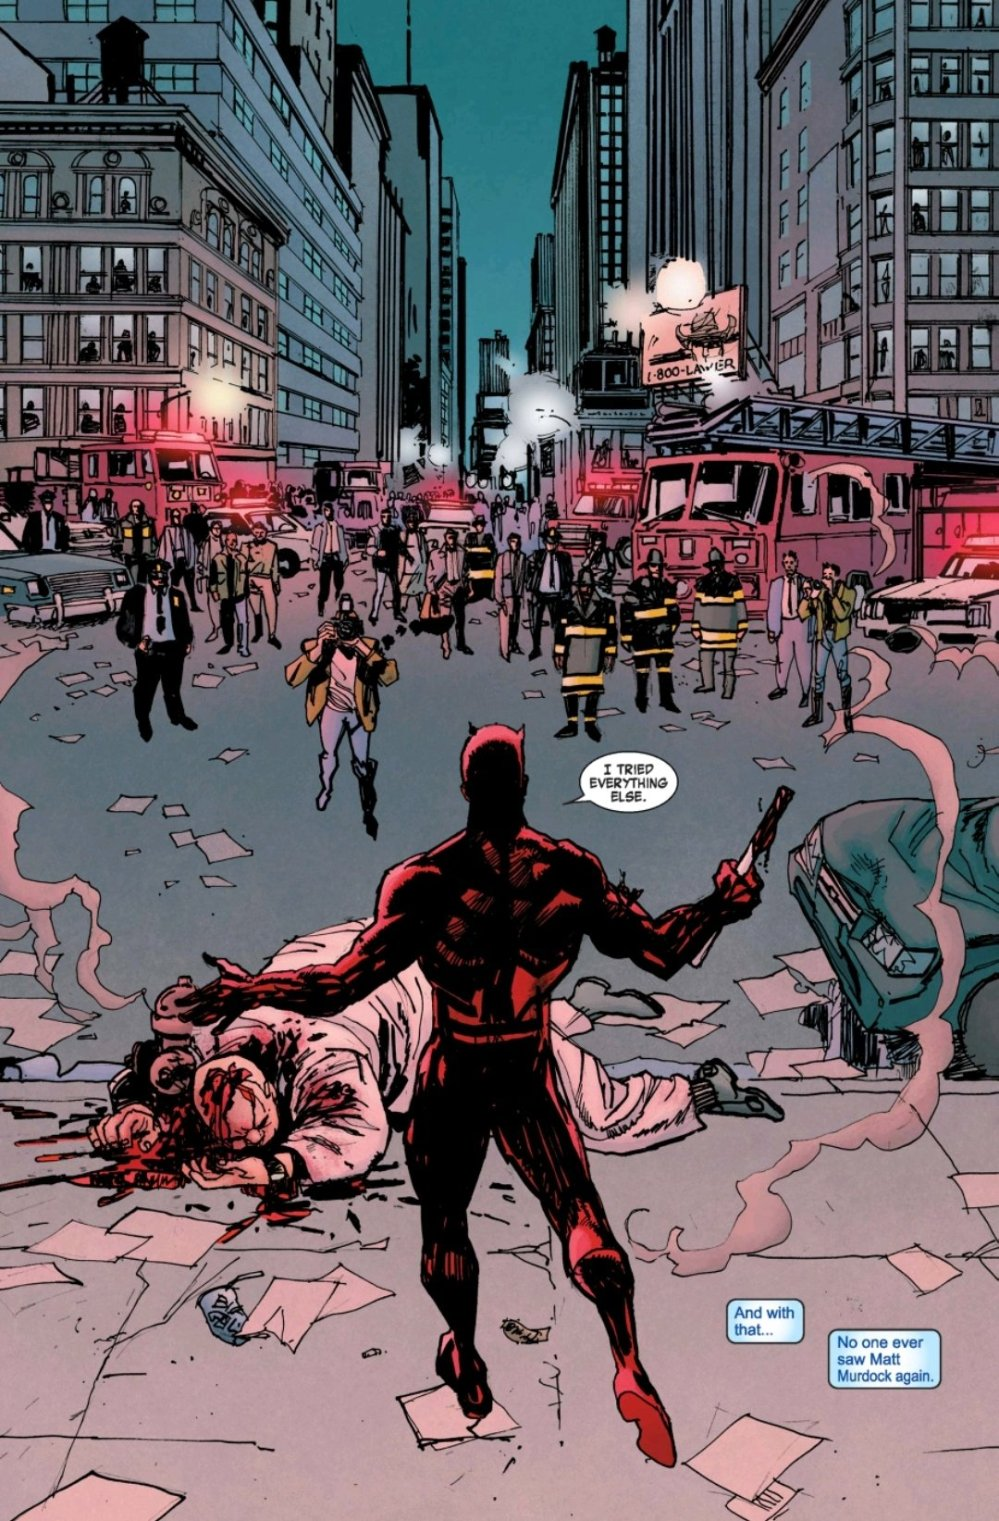 Daredevil after murdering Kingpin in the streets